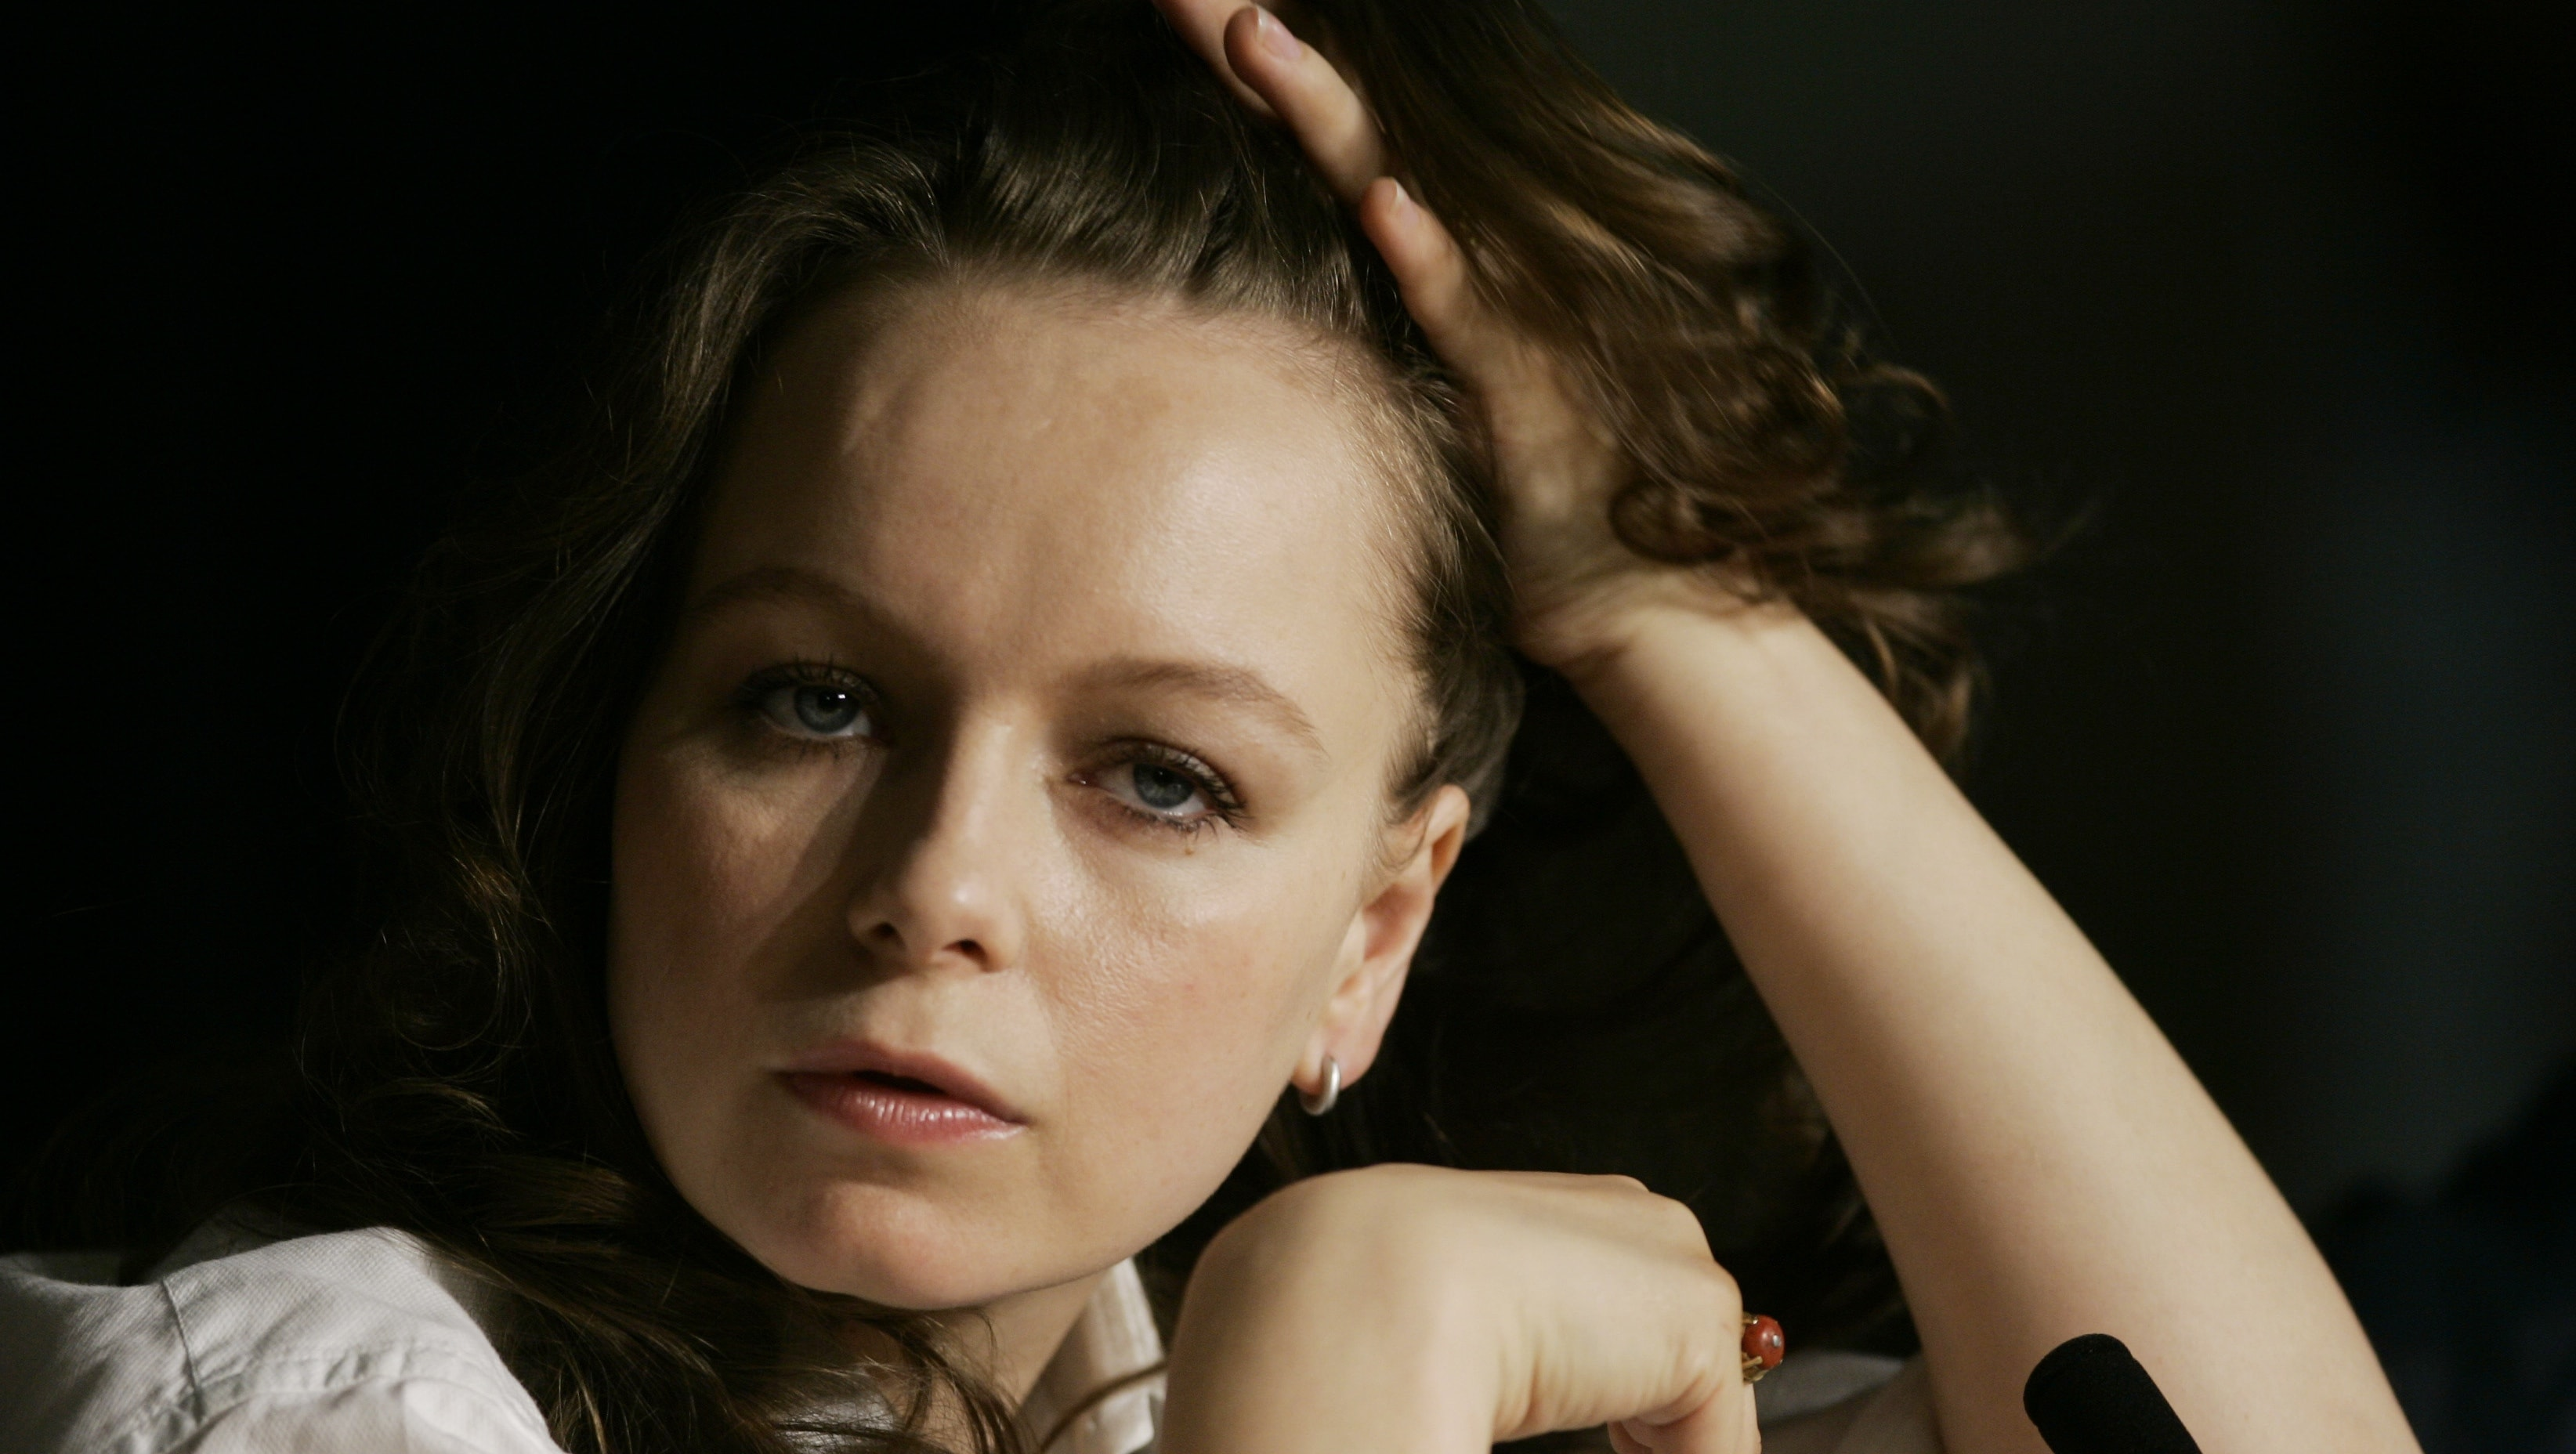 Samantha Morton (born 1977) Samantha Morton (born 1977) new pictures